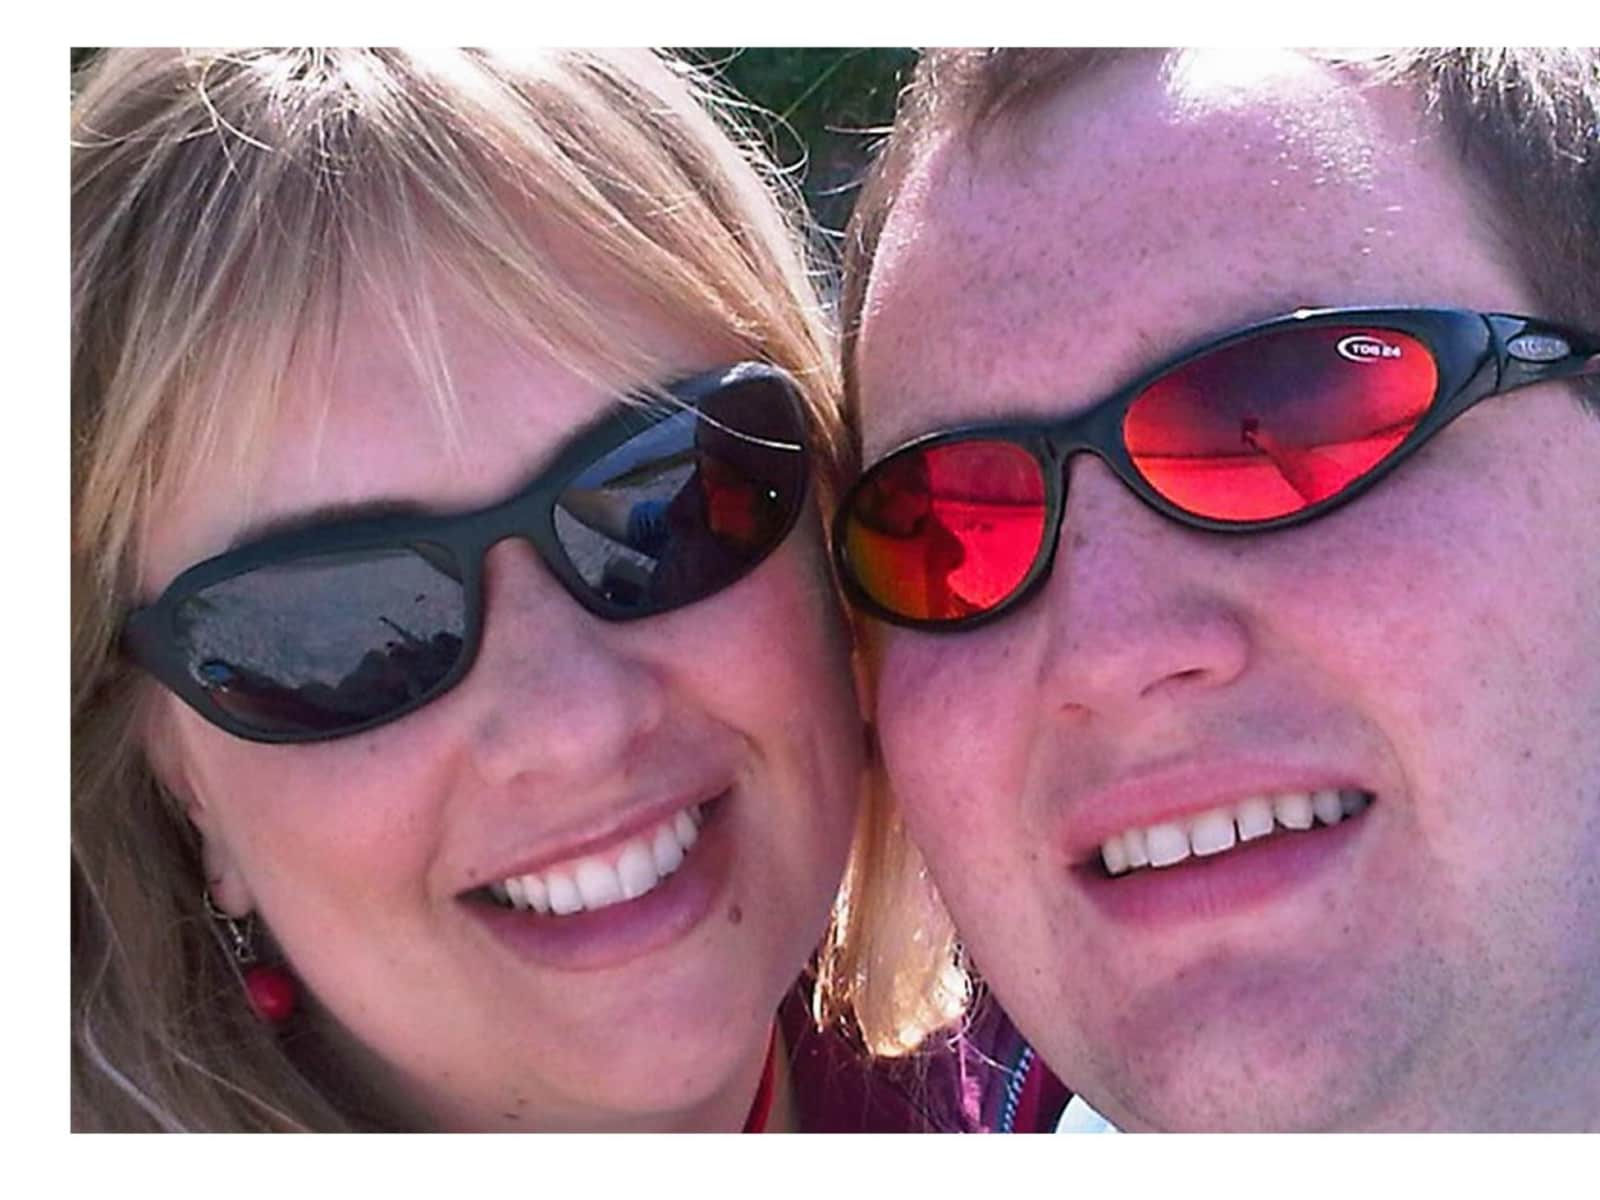 Carrie & Andrew from Stratford-upon-Avon, United Kingdom